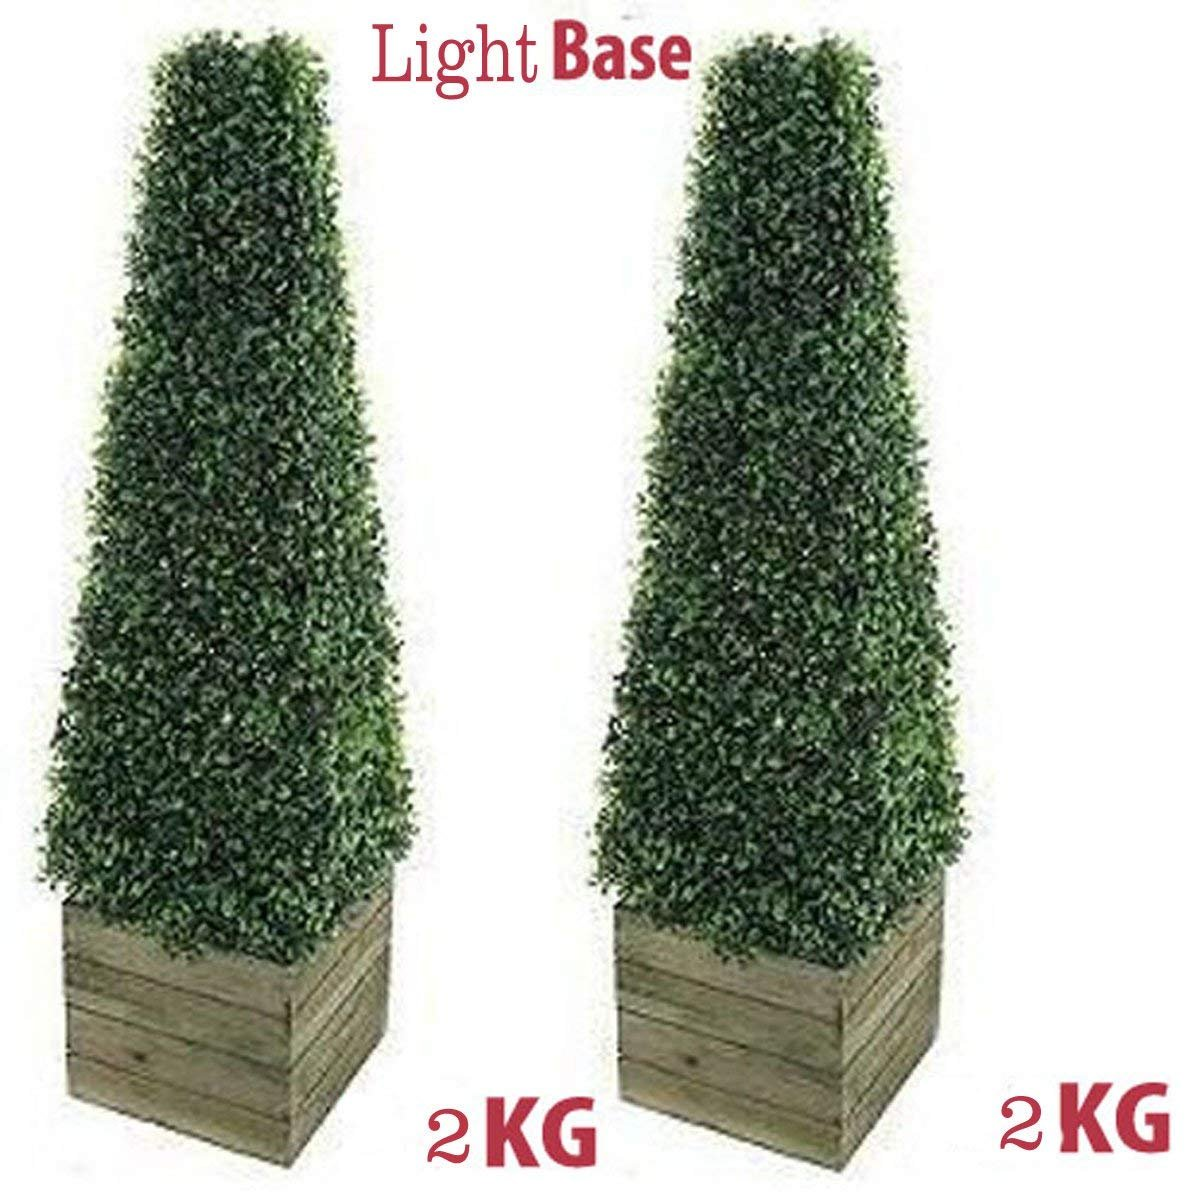 Pair of stunning Artificial Trees 3ft Pyramid Cones includes wooden box stands - Indoor / outdoor artificial trees - Realistic Topiary trees Faux tree